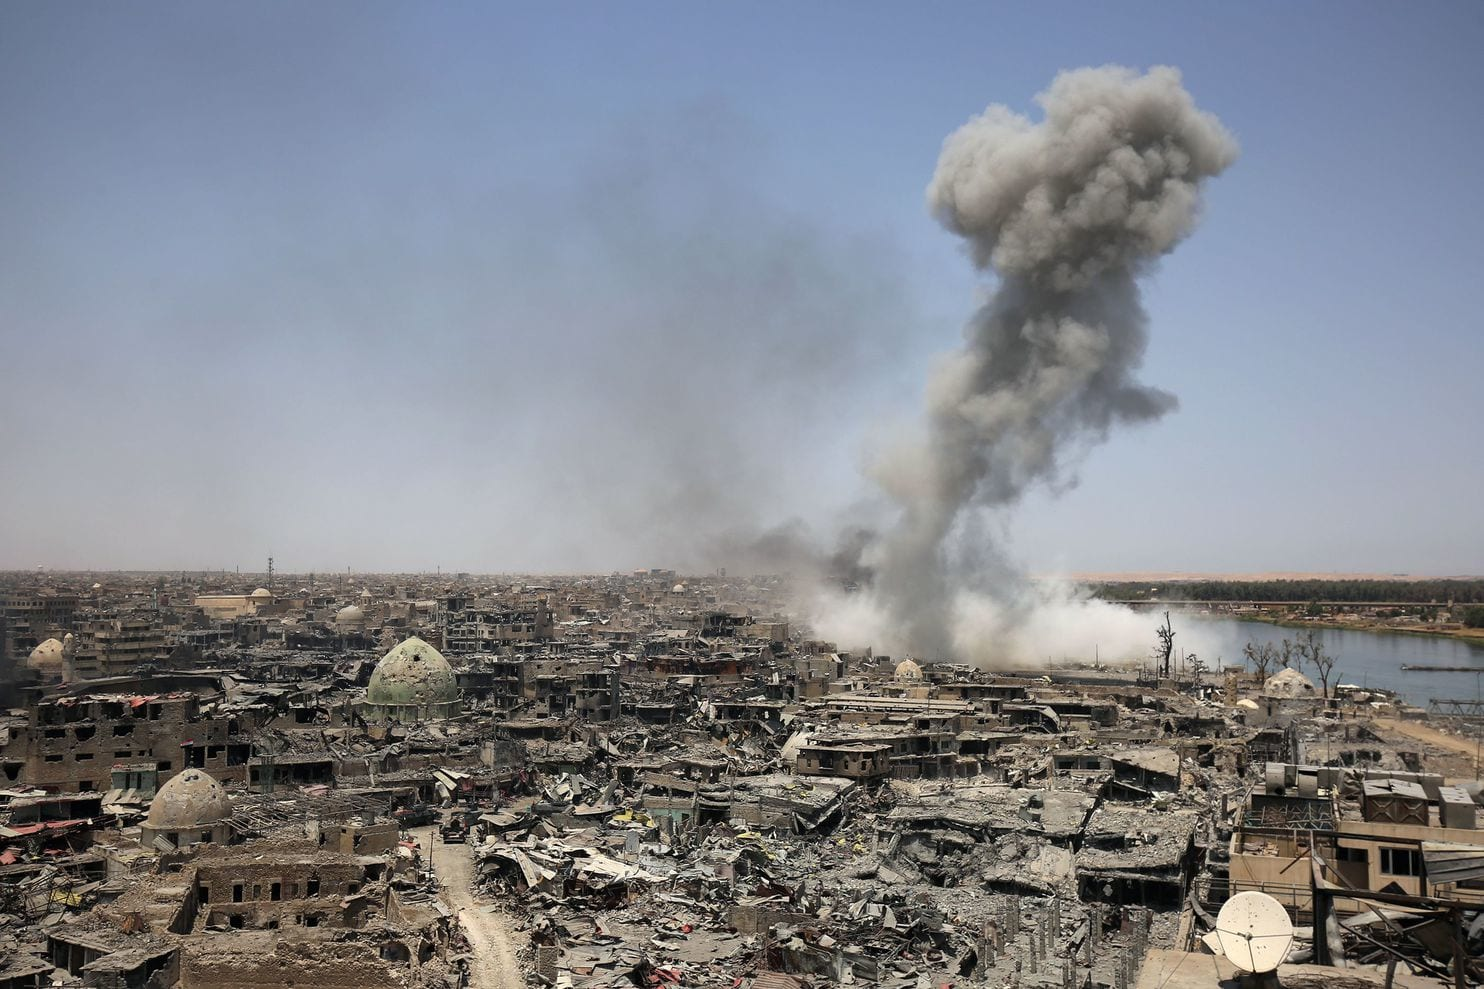 US airstrike on Mosul on 17 March 2017 alone was thought to kill more than 500 civilians -